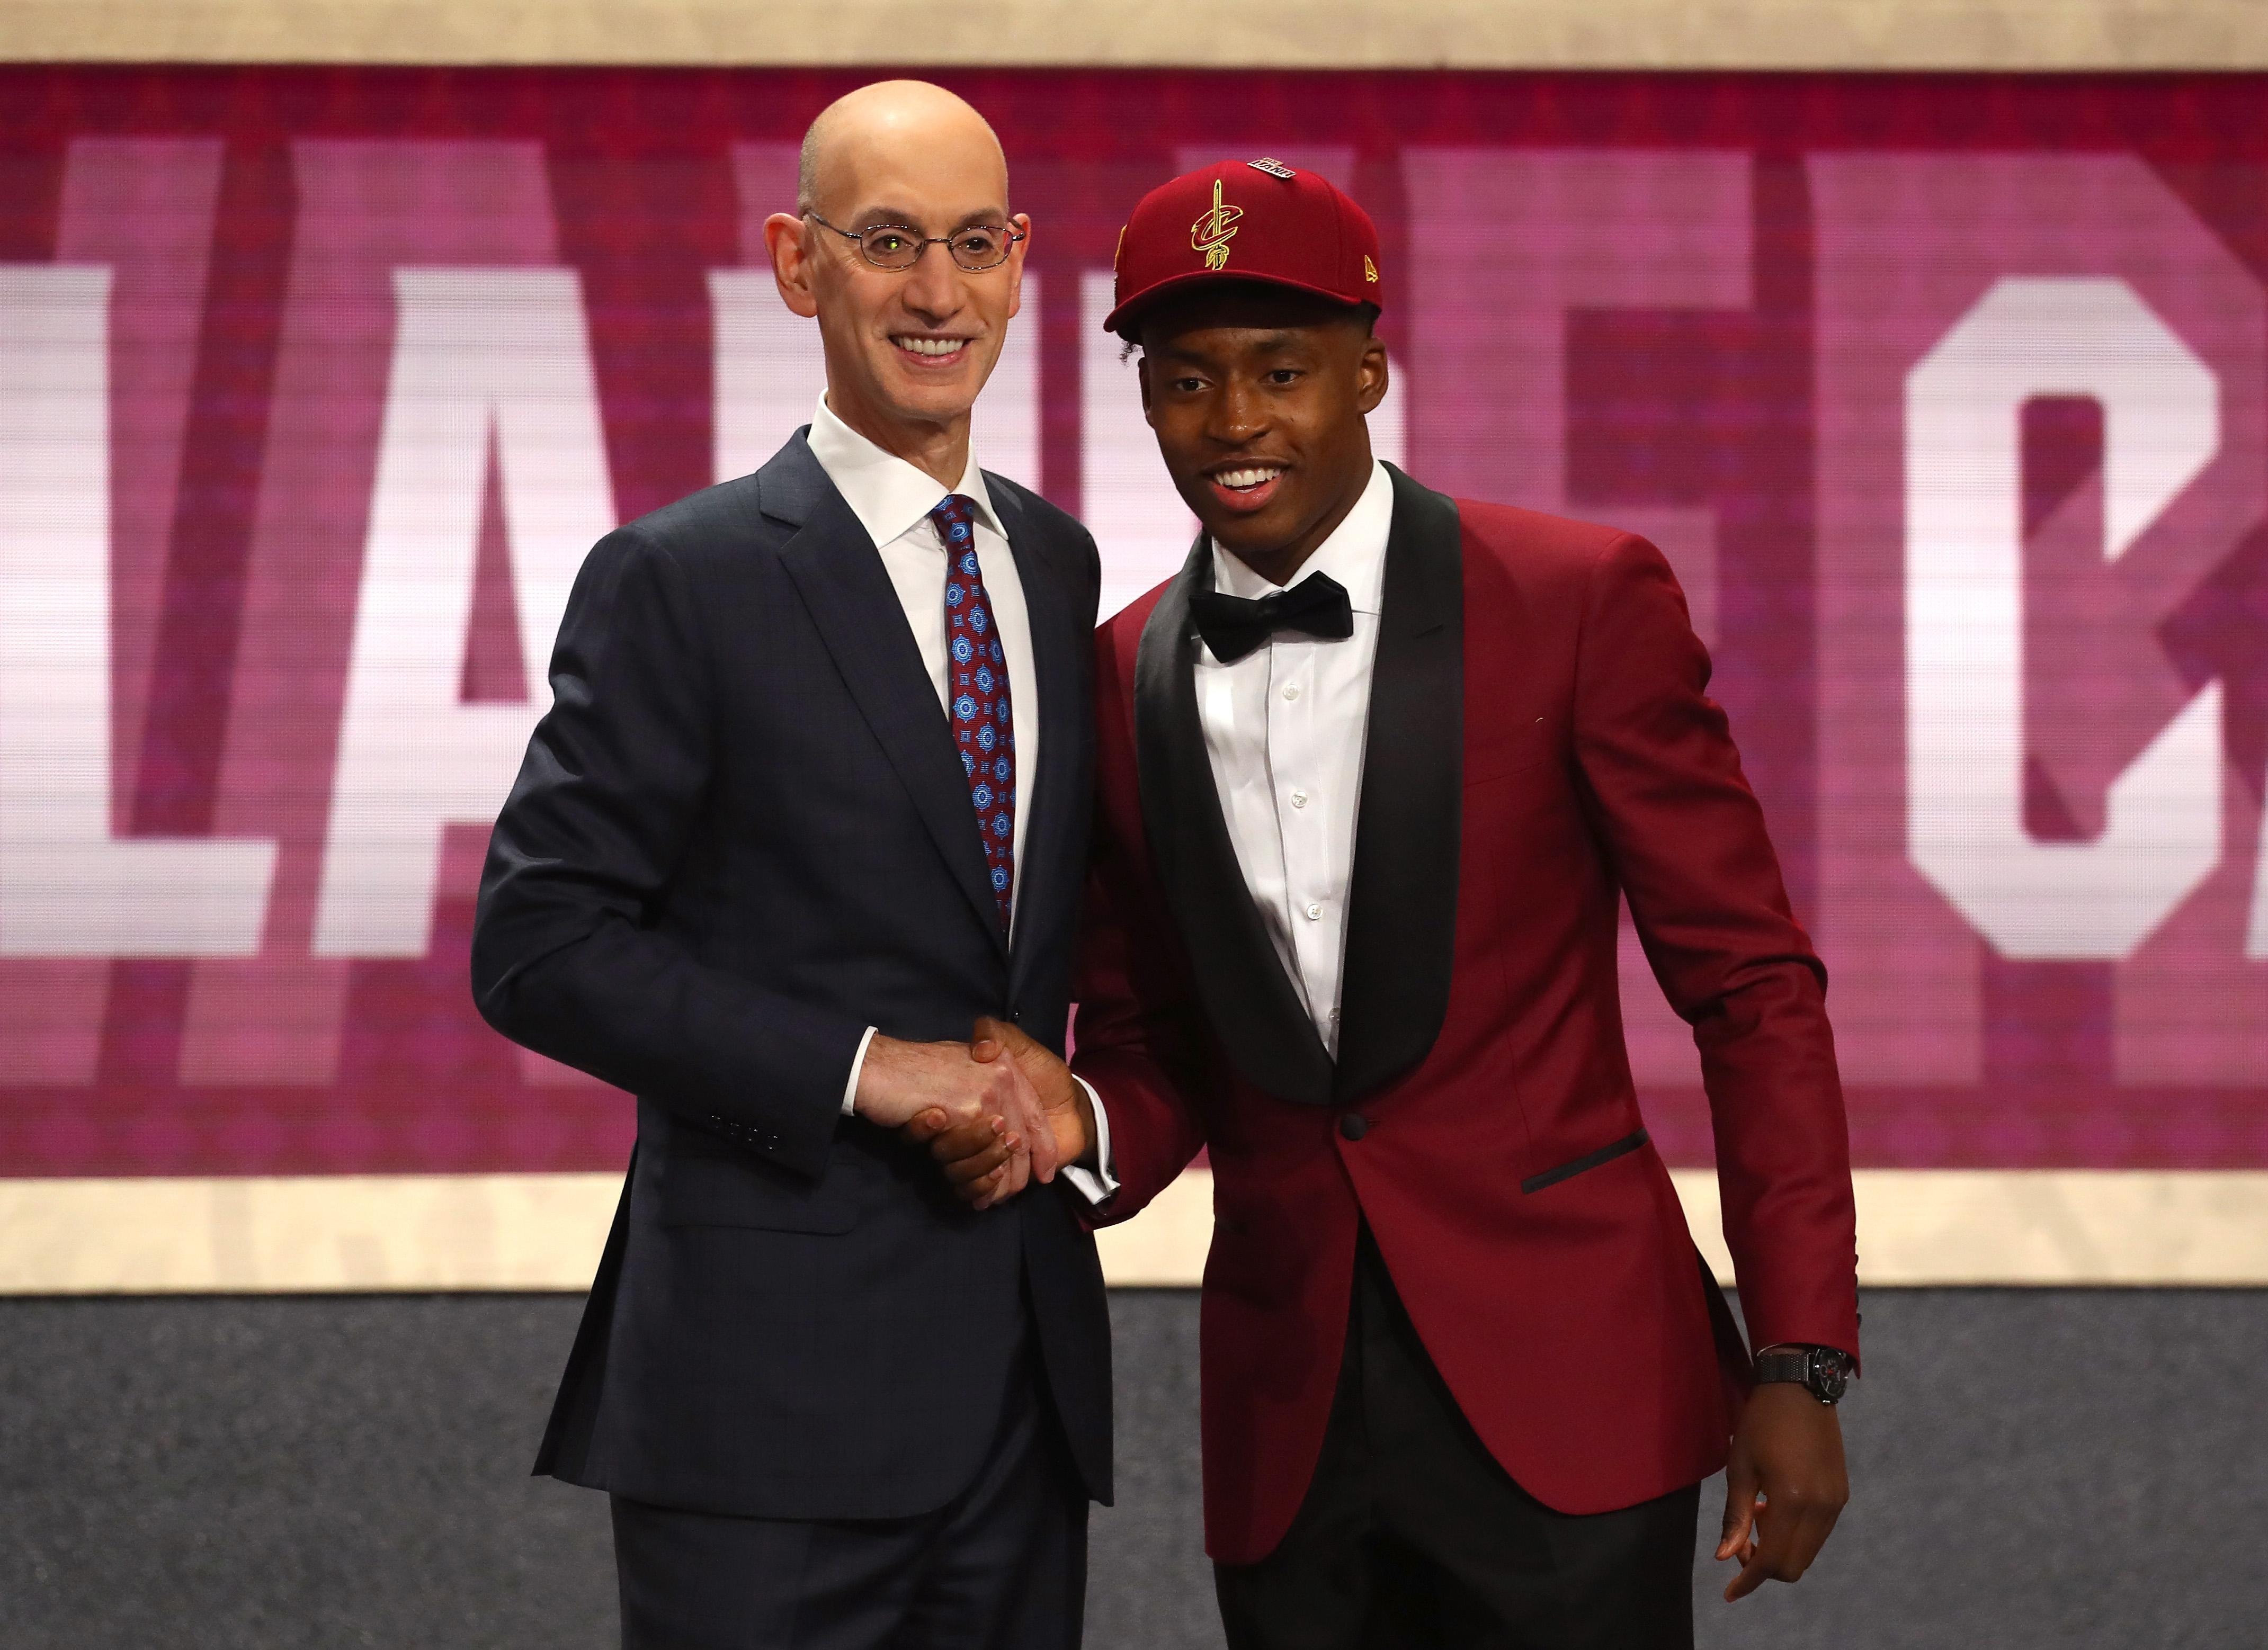 Cavaliers draft Collin Sexton, who LeBron James just happened to prefer